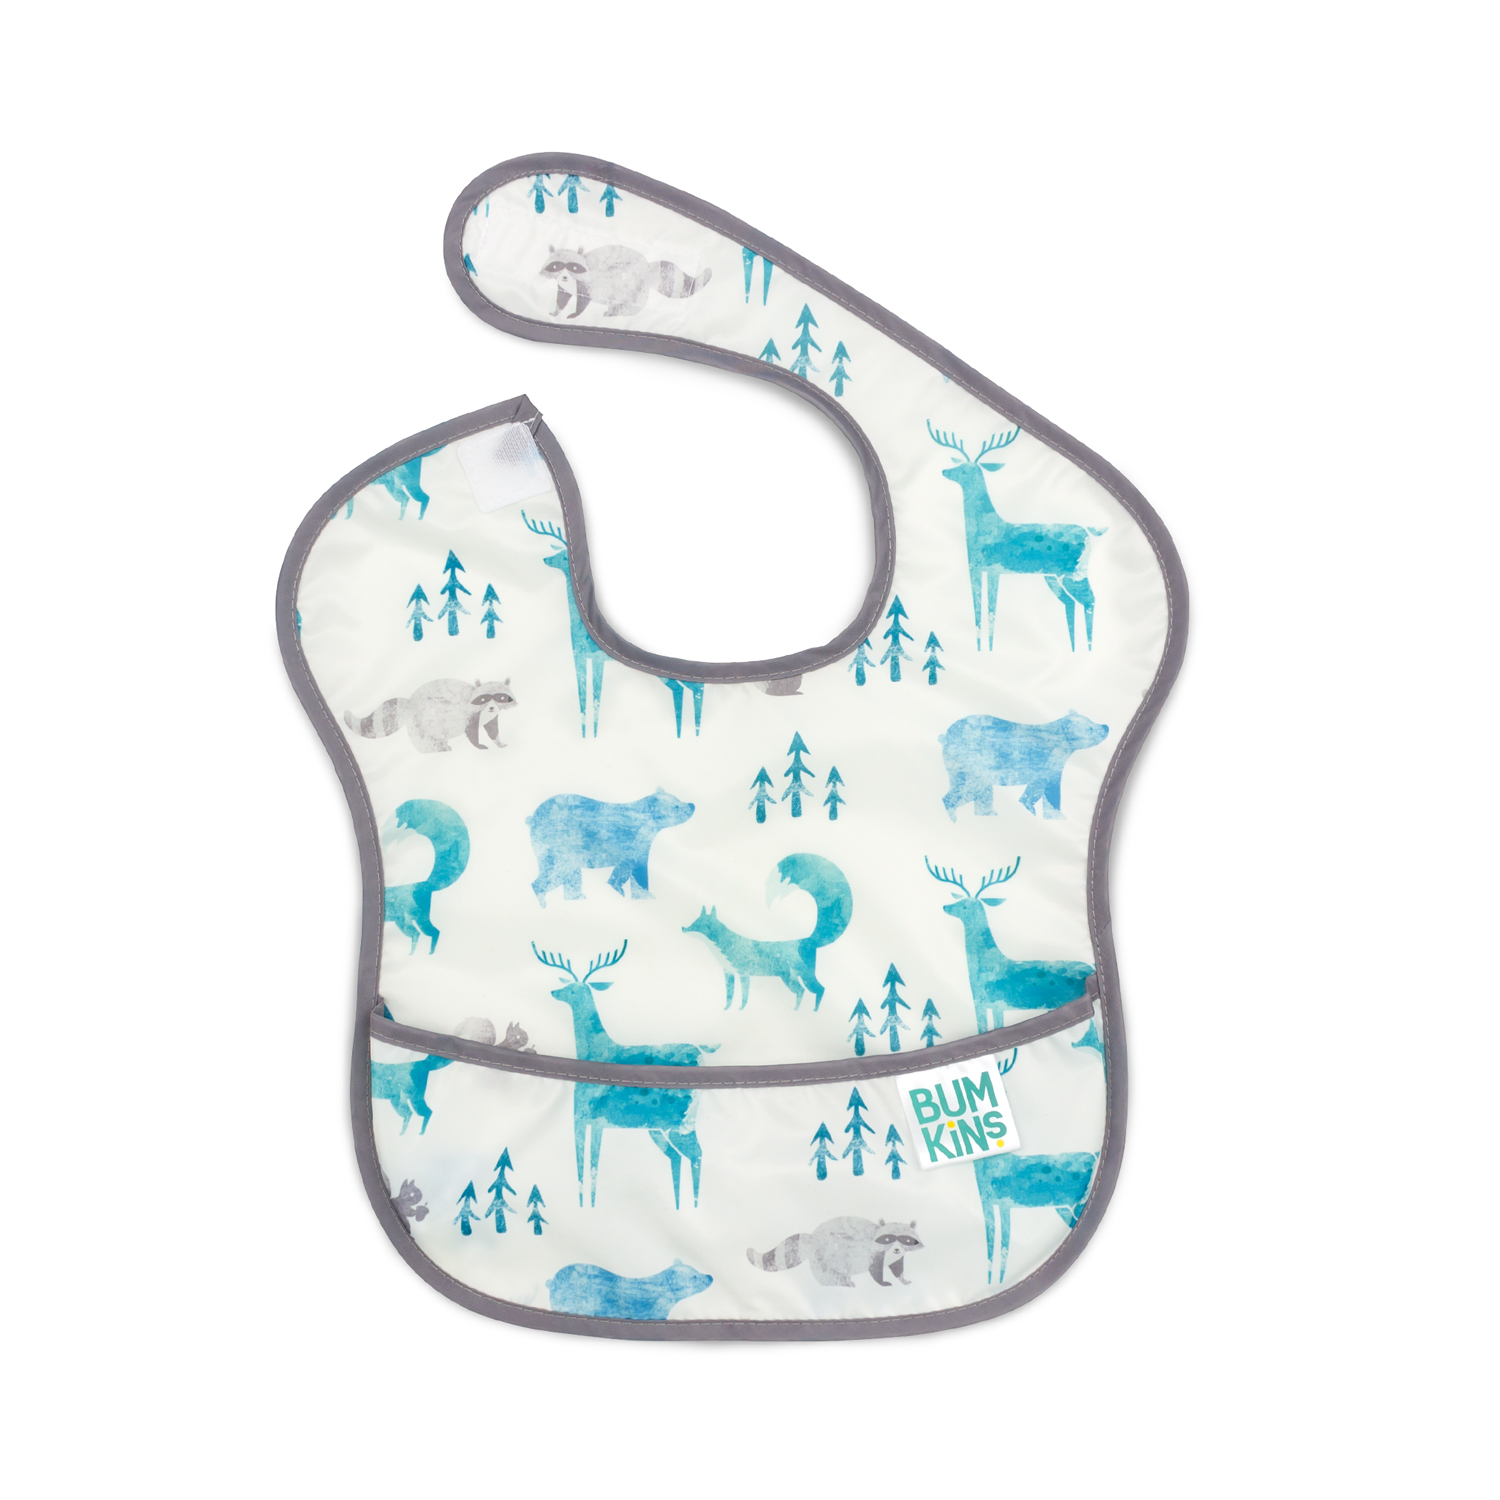 "Bumkins SuperBib size 11.5""x 13"" - Wildlife"